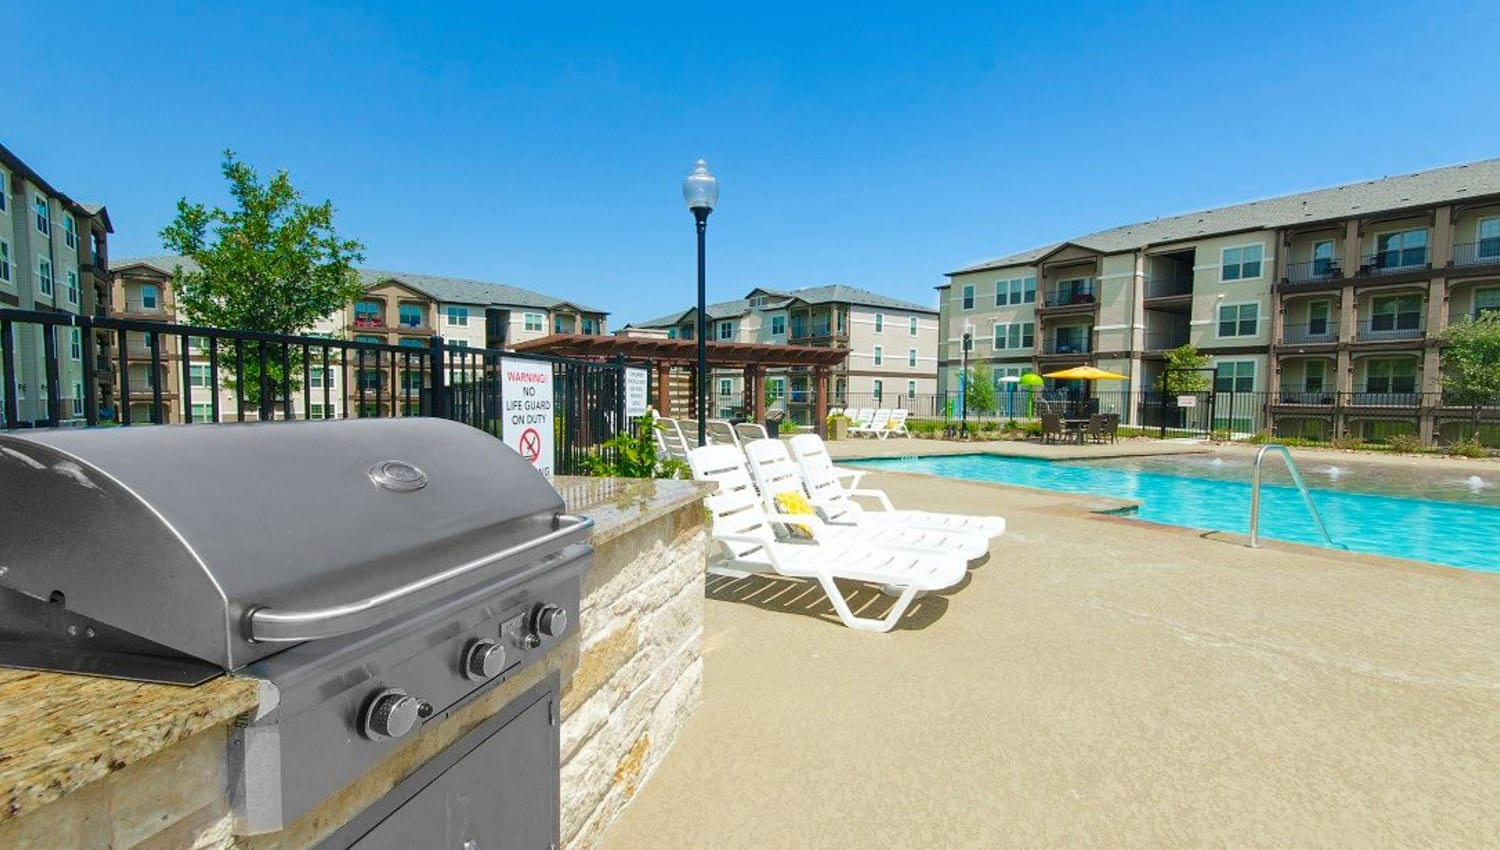 Barbecue area with gas grills near the pool at Olympus Woodbridge in Sachse, Texas